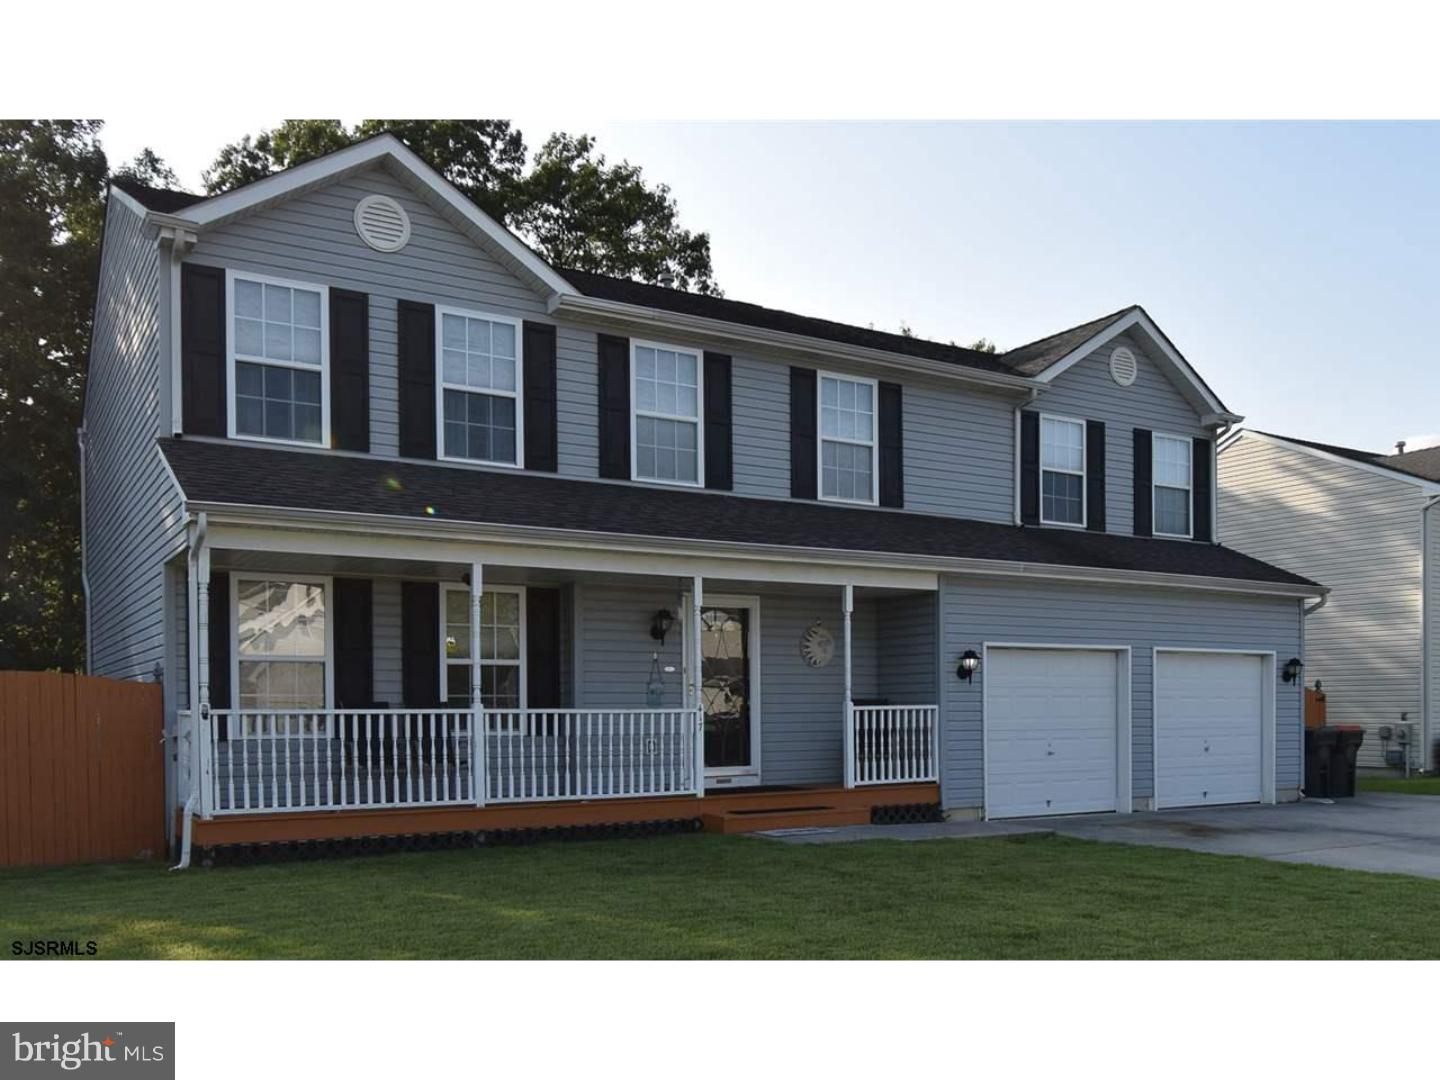 Single Family Home for Sale at 417 S HOLLY Avenue Galloway, New Jersey 08205 United States